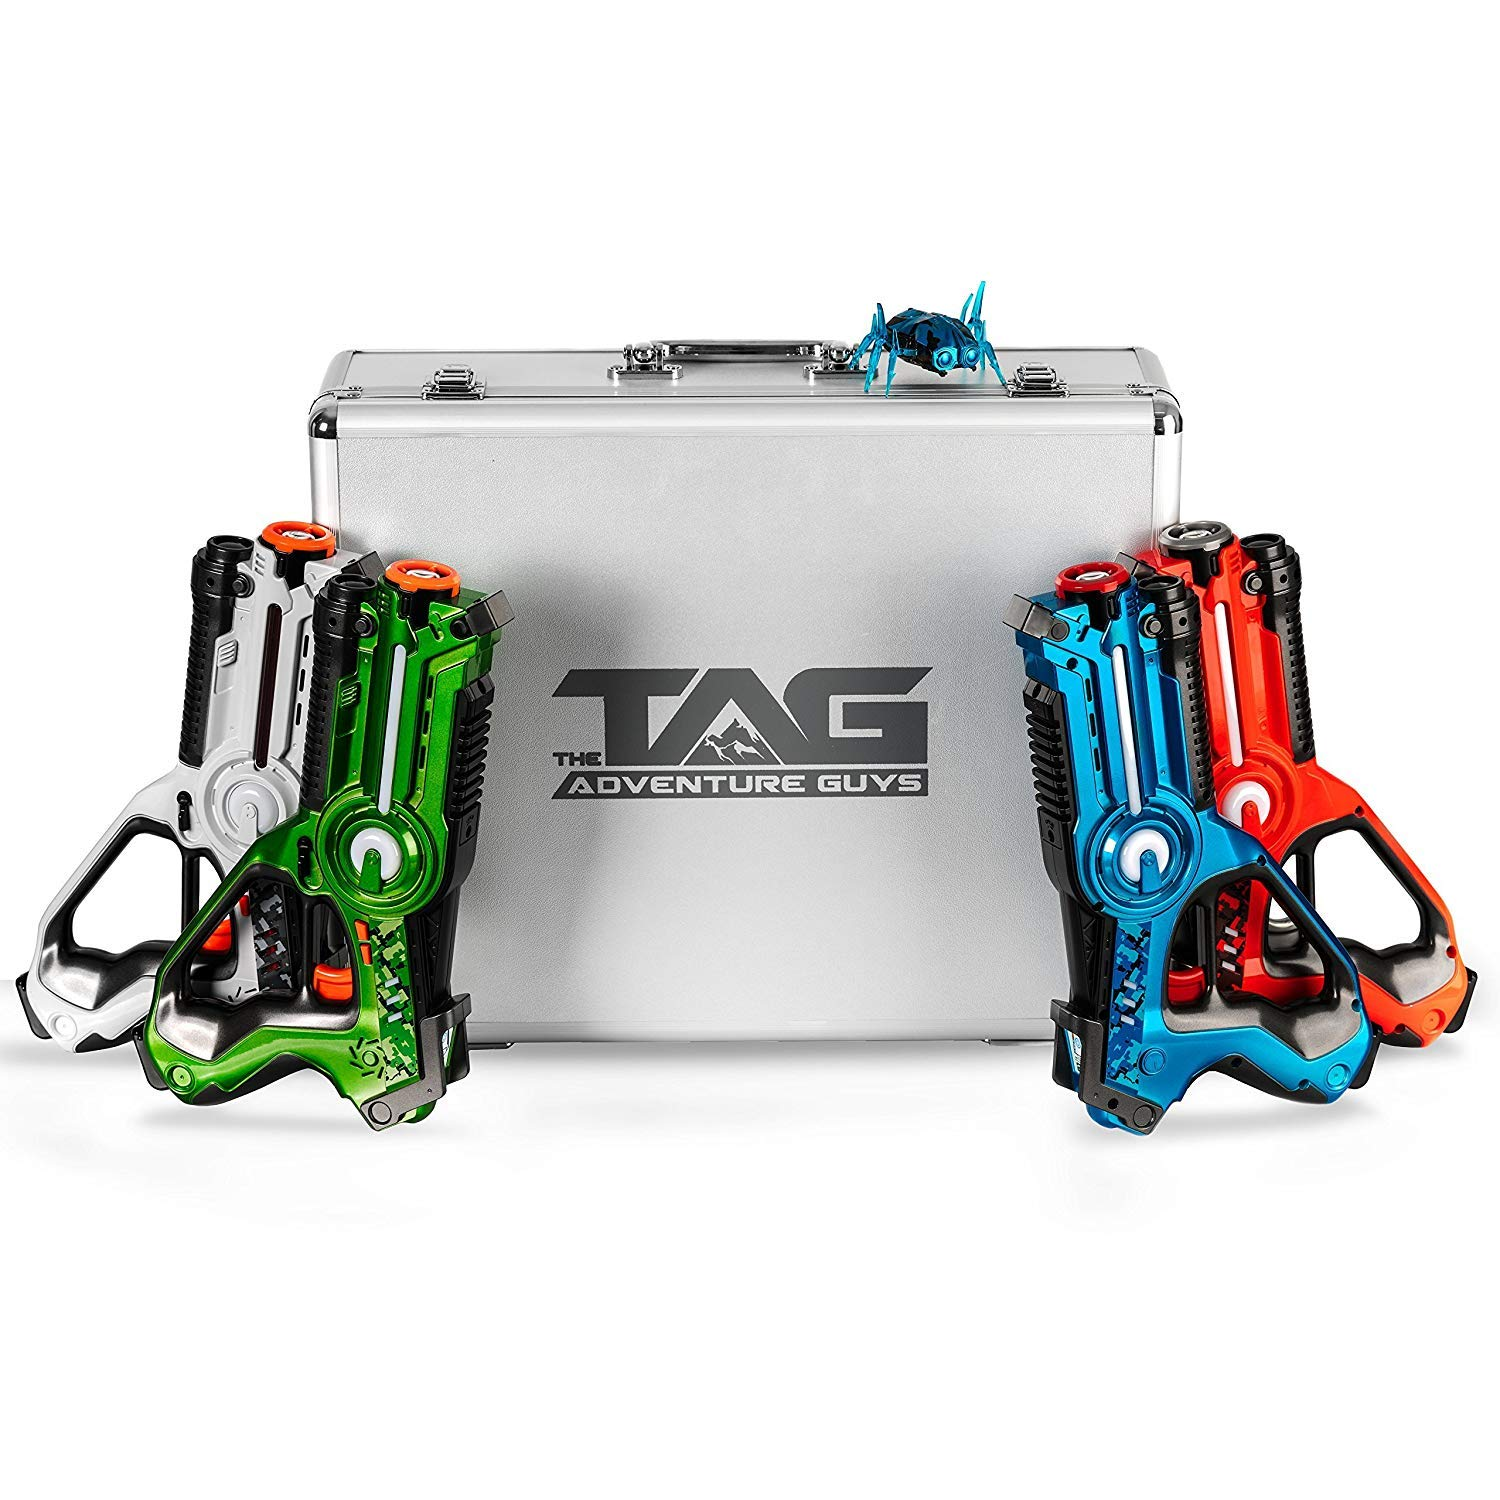 The Adventure Guys Deluxe Edition Lazer Tag Gun Set with Designer Case and BitsyBot - Premium Lazer Tag for The Whole Family! by The Adventure Guys